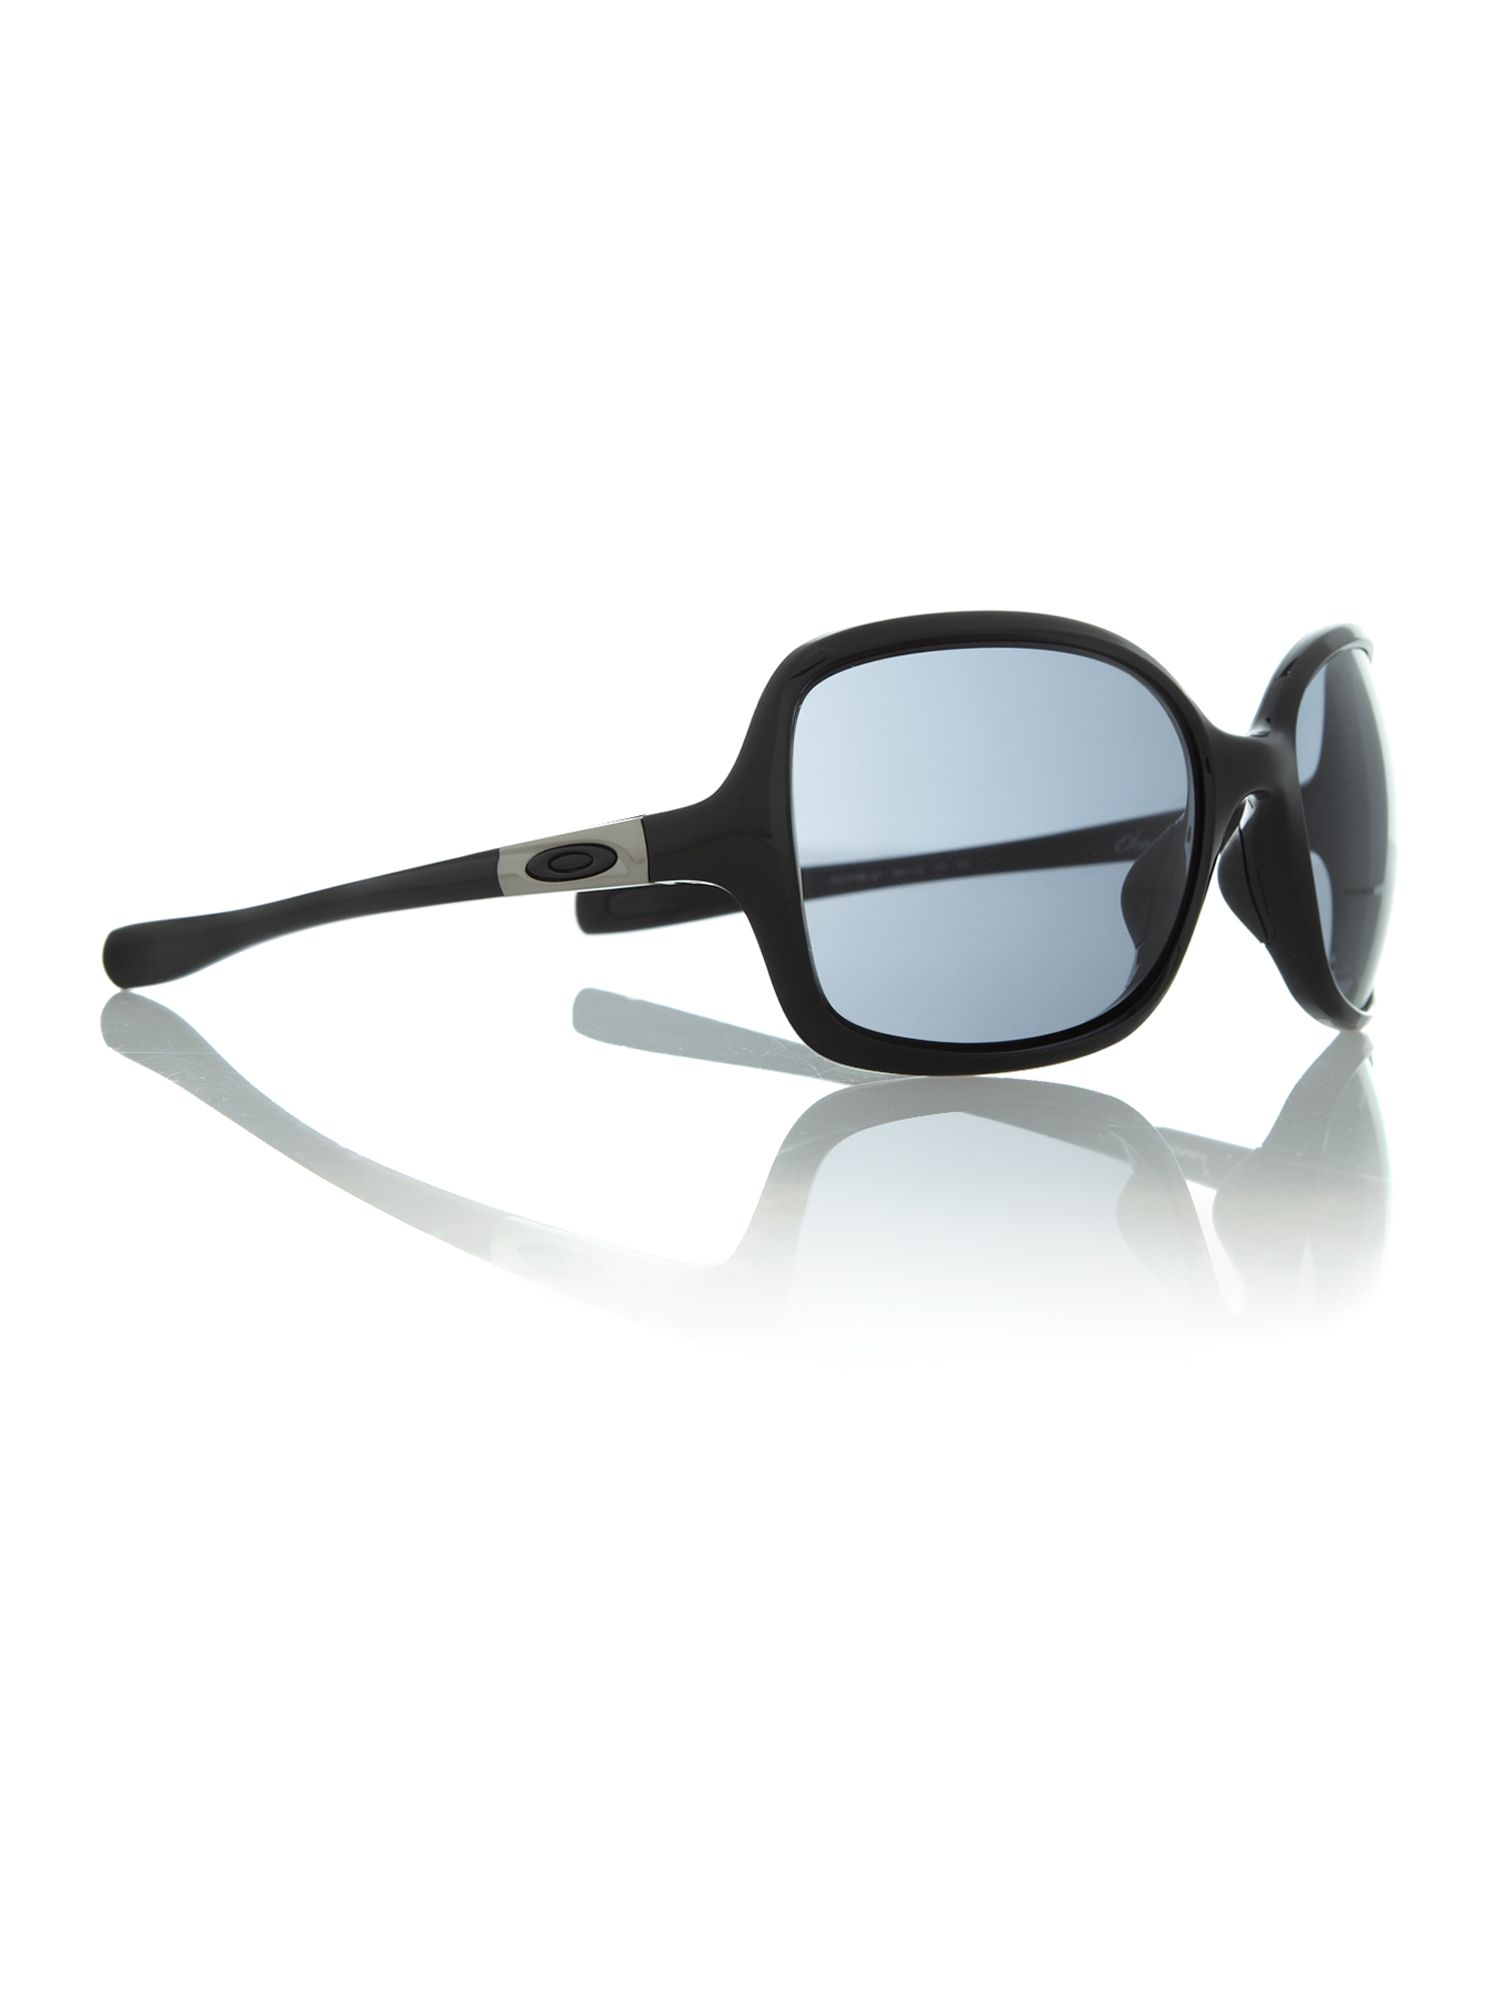 Oakely ladies OO9192 black round sunglasses